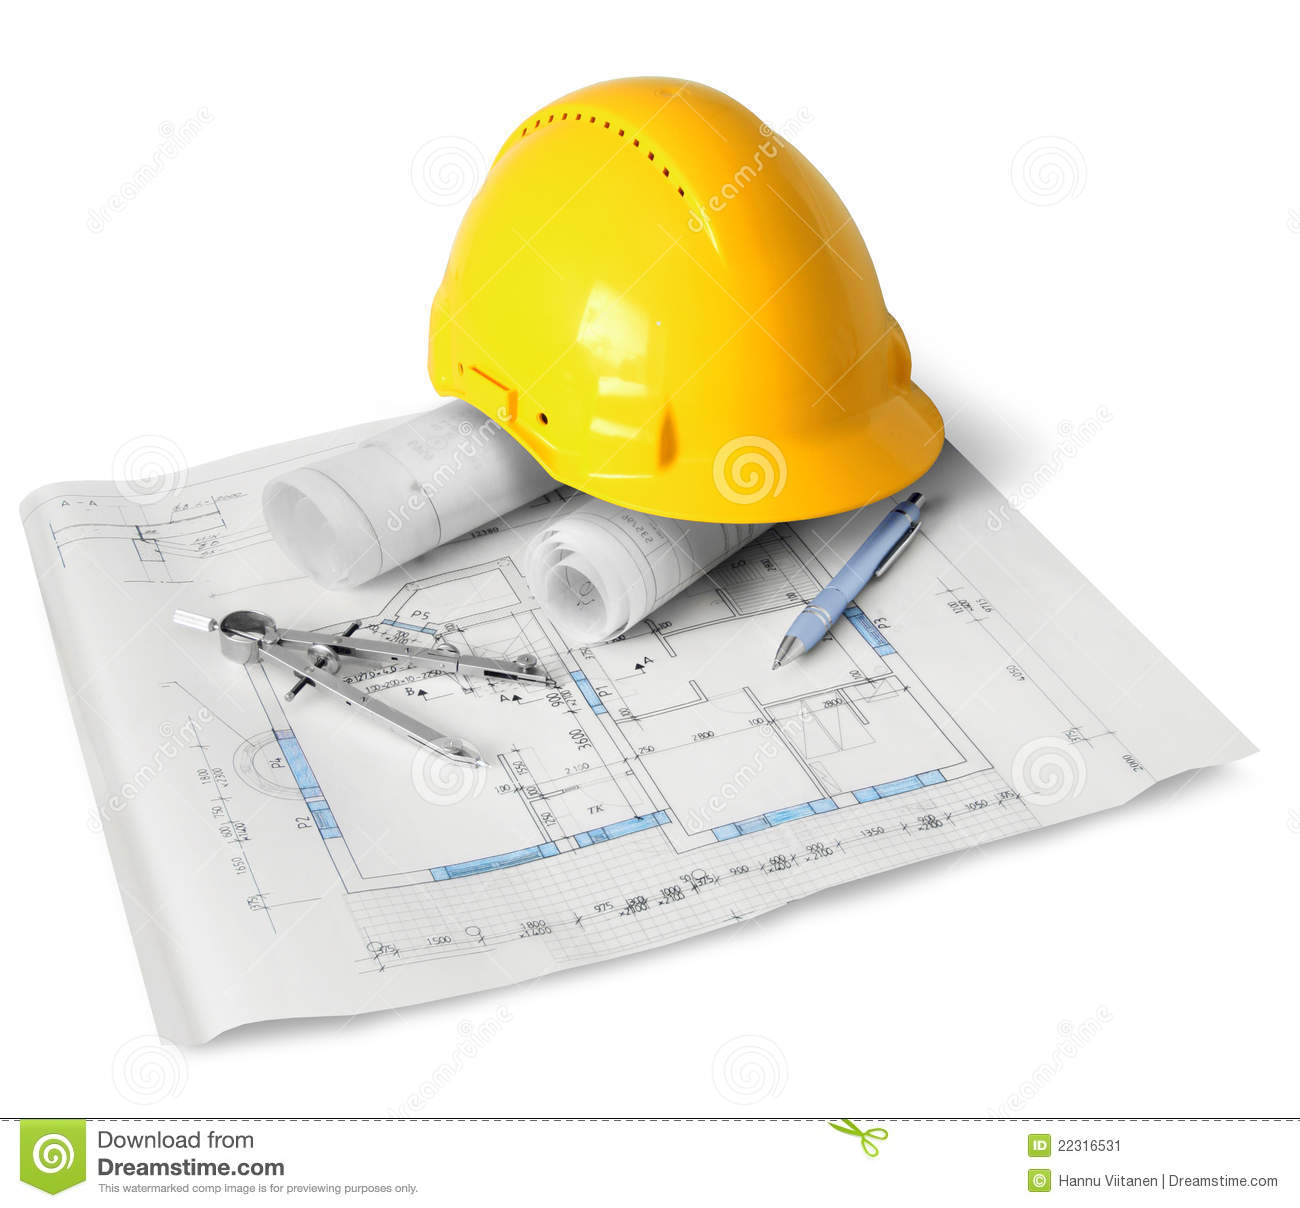 Outils de plan de construction image stock image du for Outil de construction